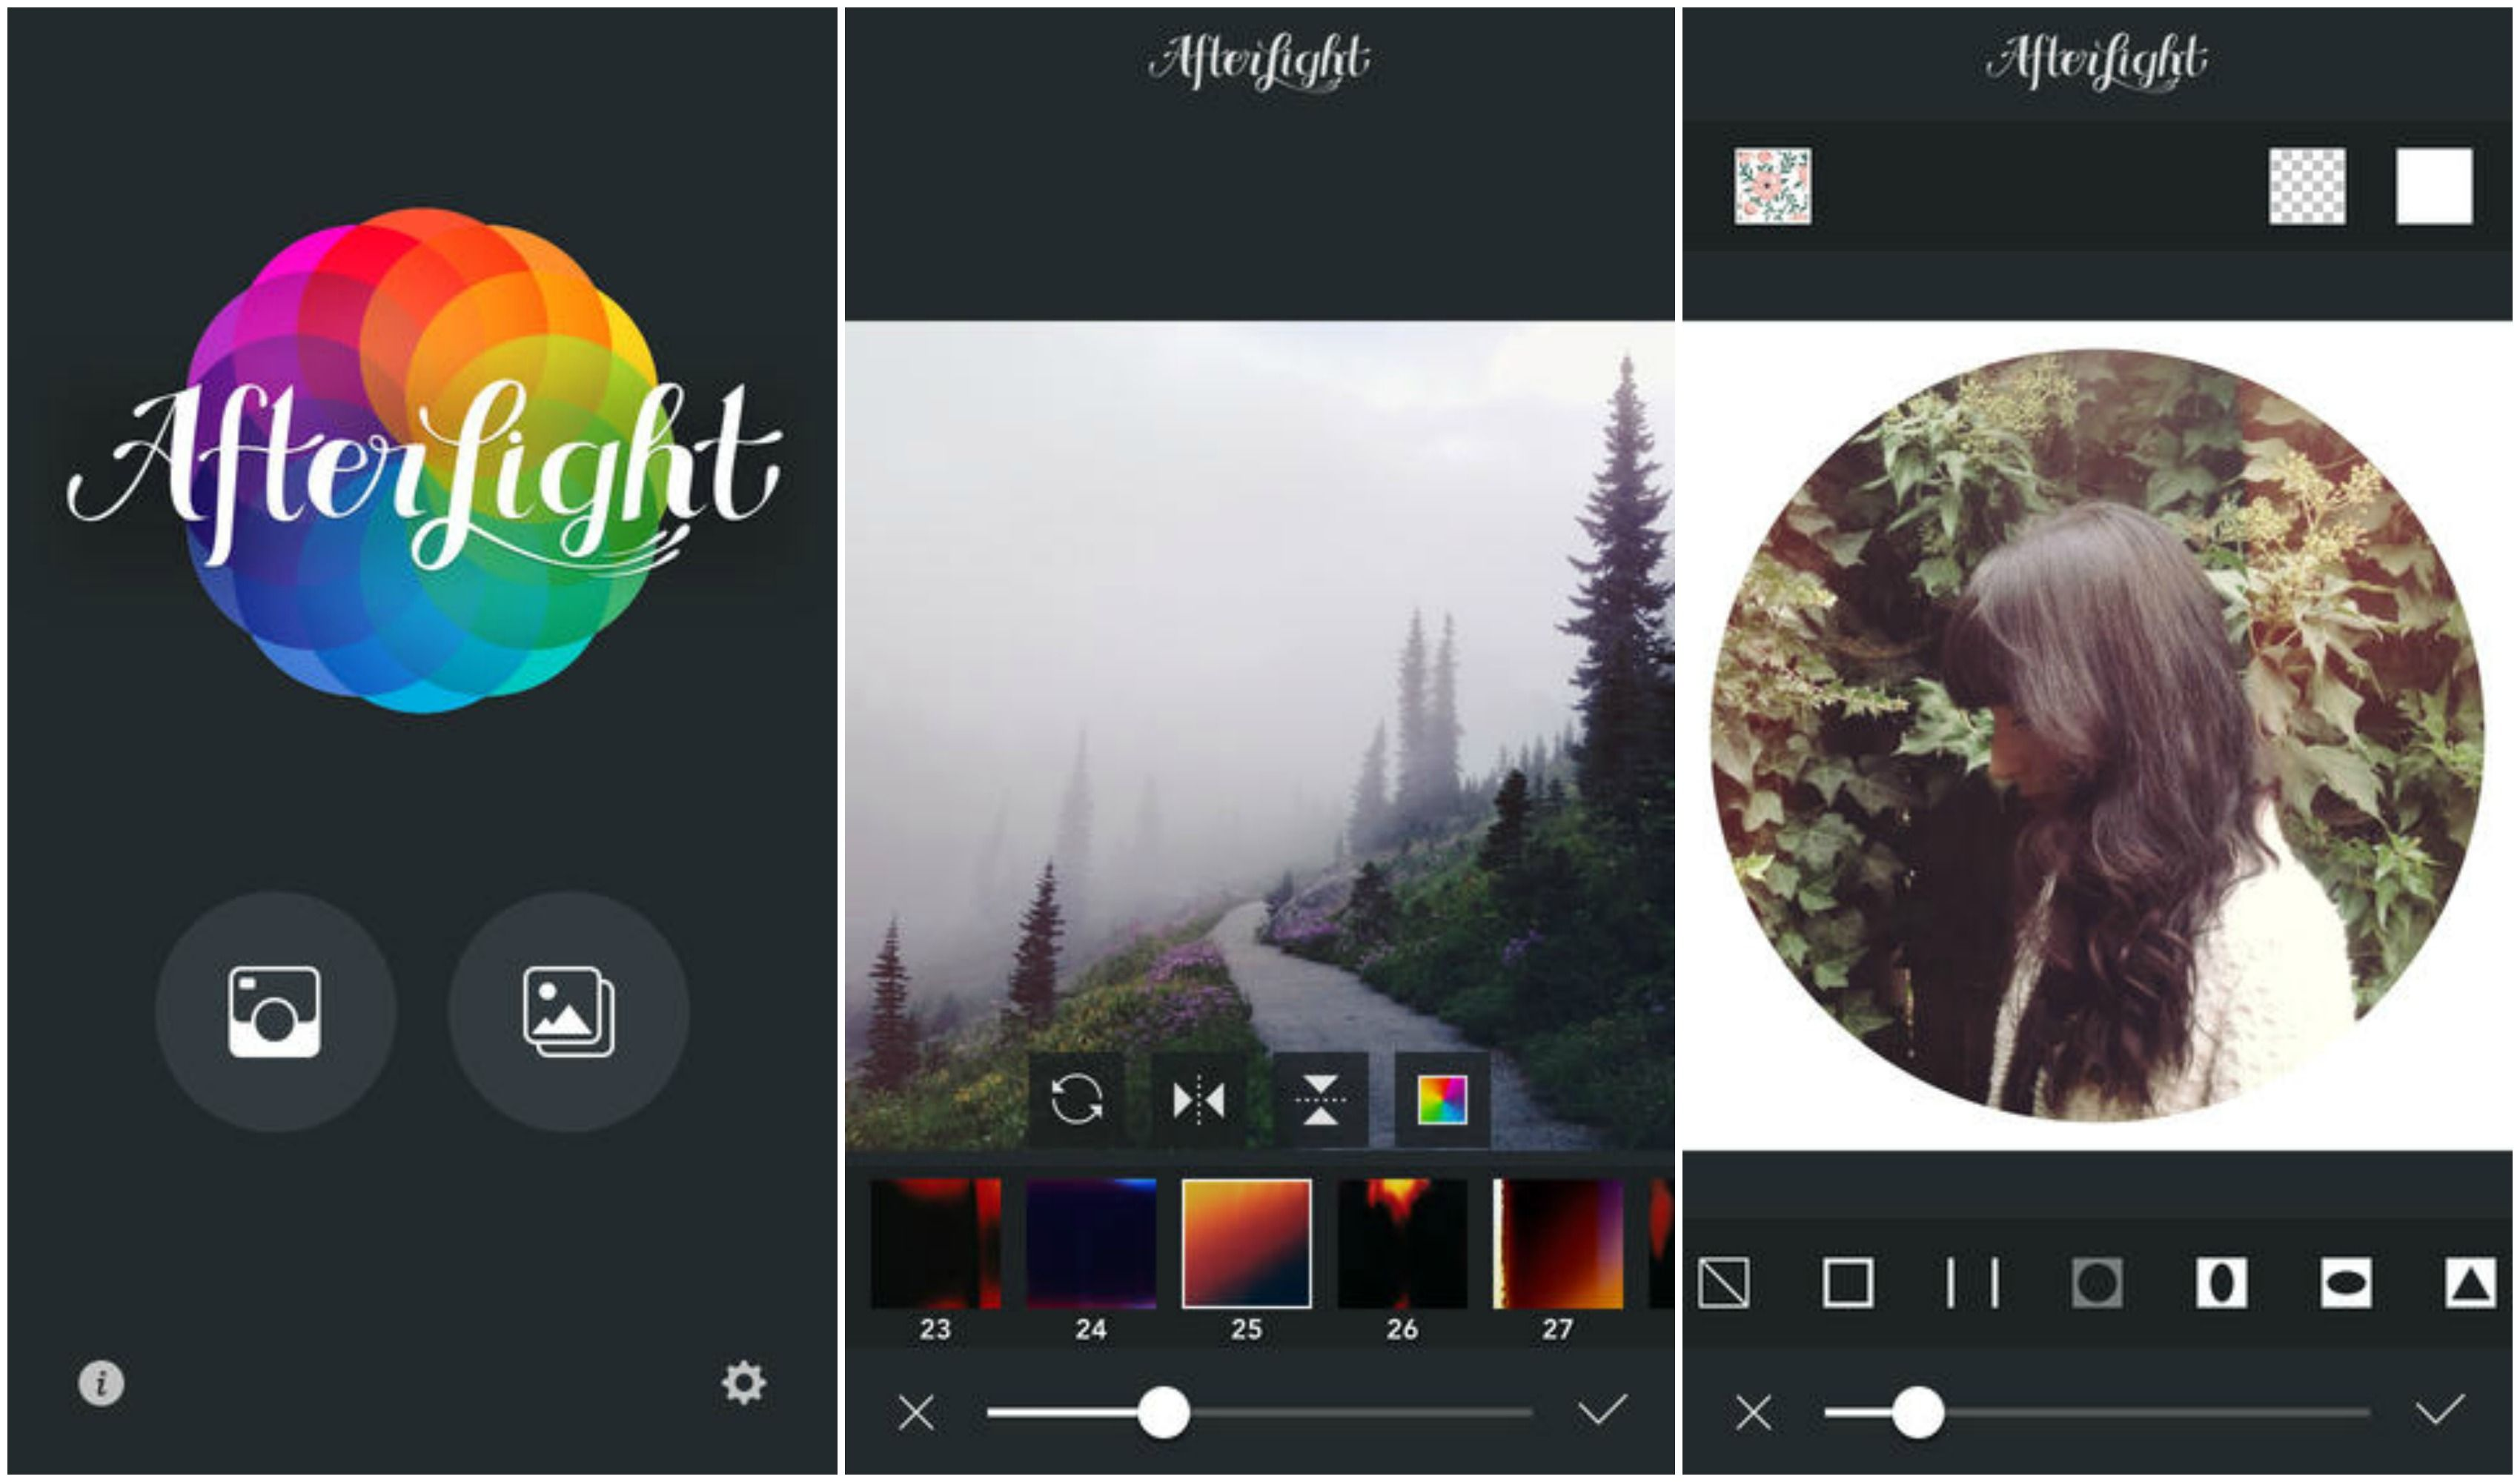 Afterlight is the perfect app for quick mobile photo editing